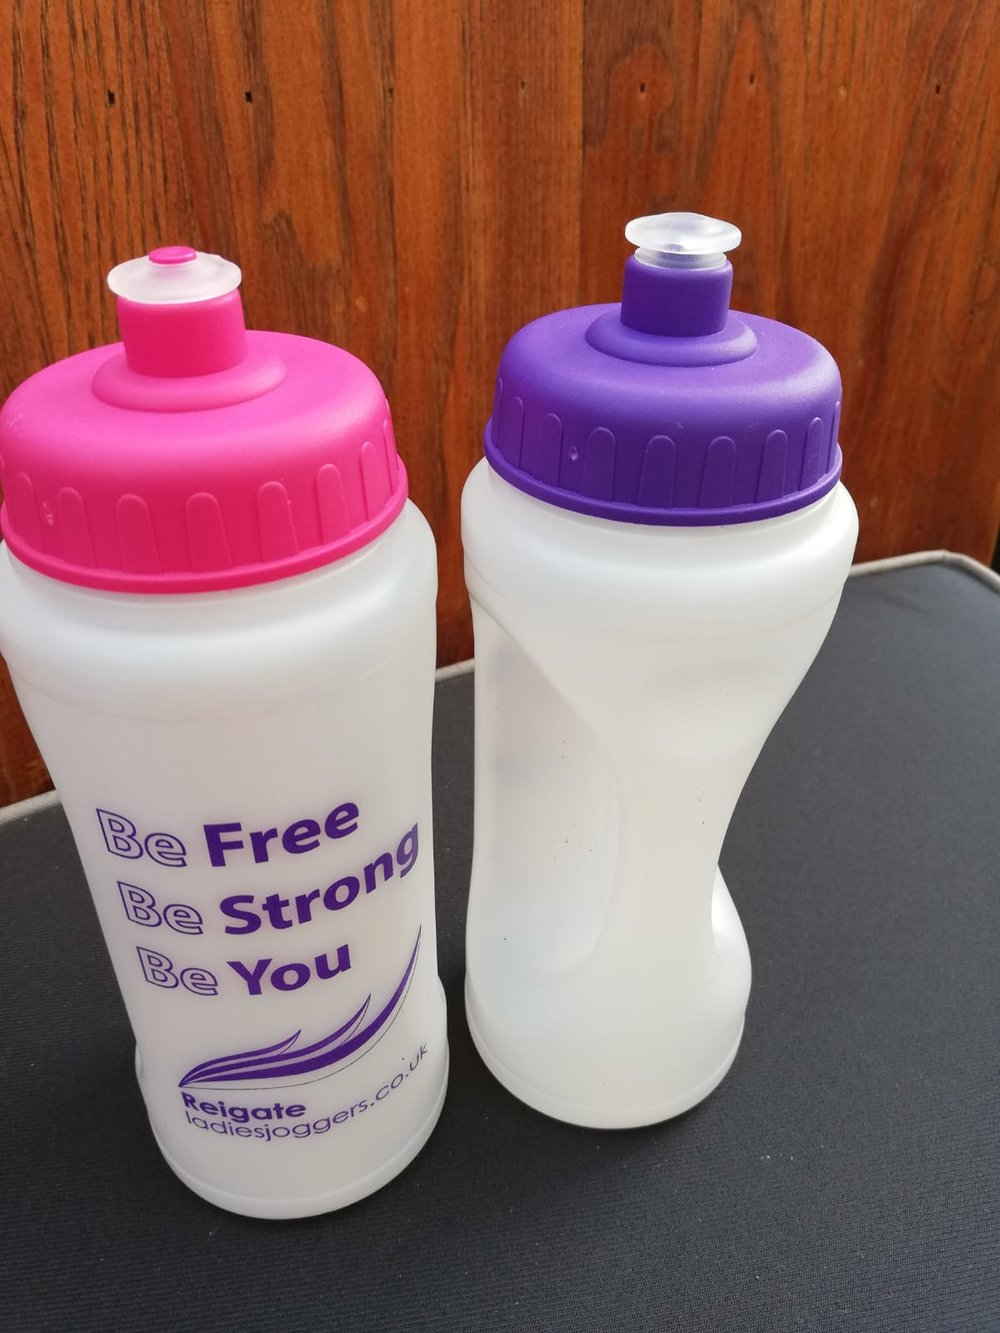 RUNNING WATER BOTTLE   THIS IS A GREAT LIGHTWEIGHT WATER BOTTLE. PERFECT SIZE TO TAKE ON ANY RUN WITH YOU AND EASY GRIP HANDLE MEANS IT WONT EFFECT YOUR RUNNING STYLE.   COST: £5